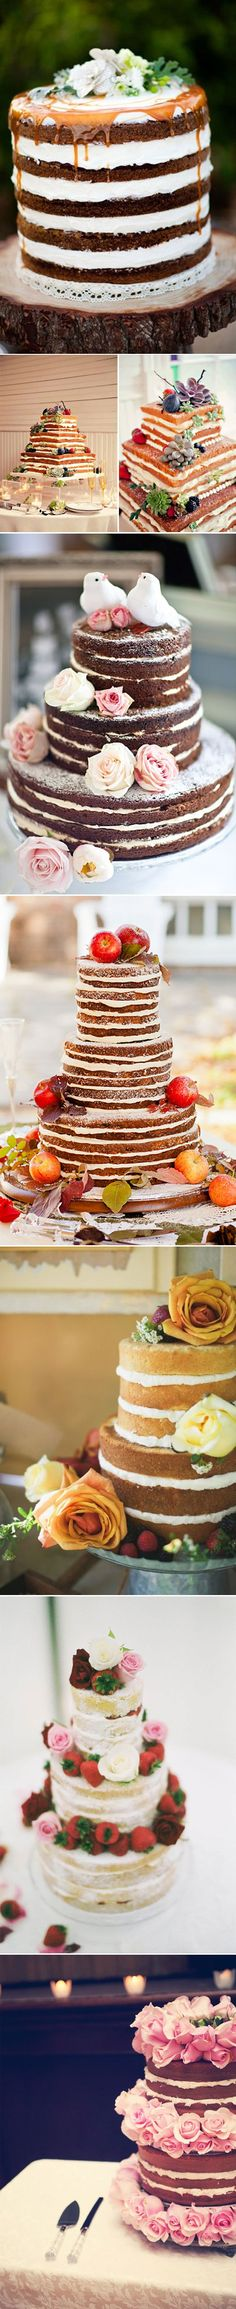 Naked Cakes. A new trending theme. This is beautiful!